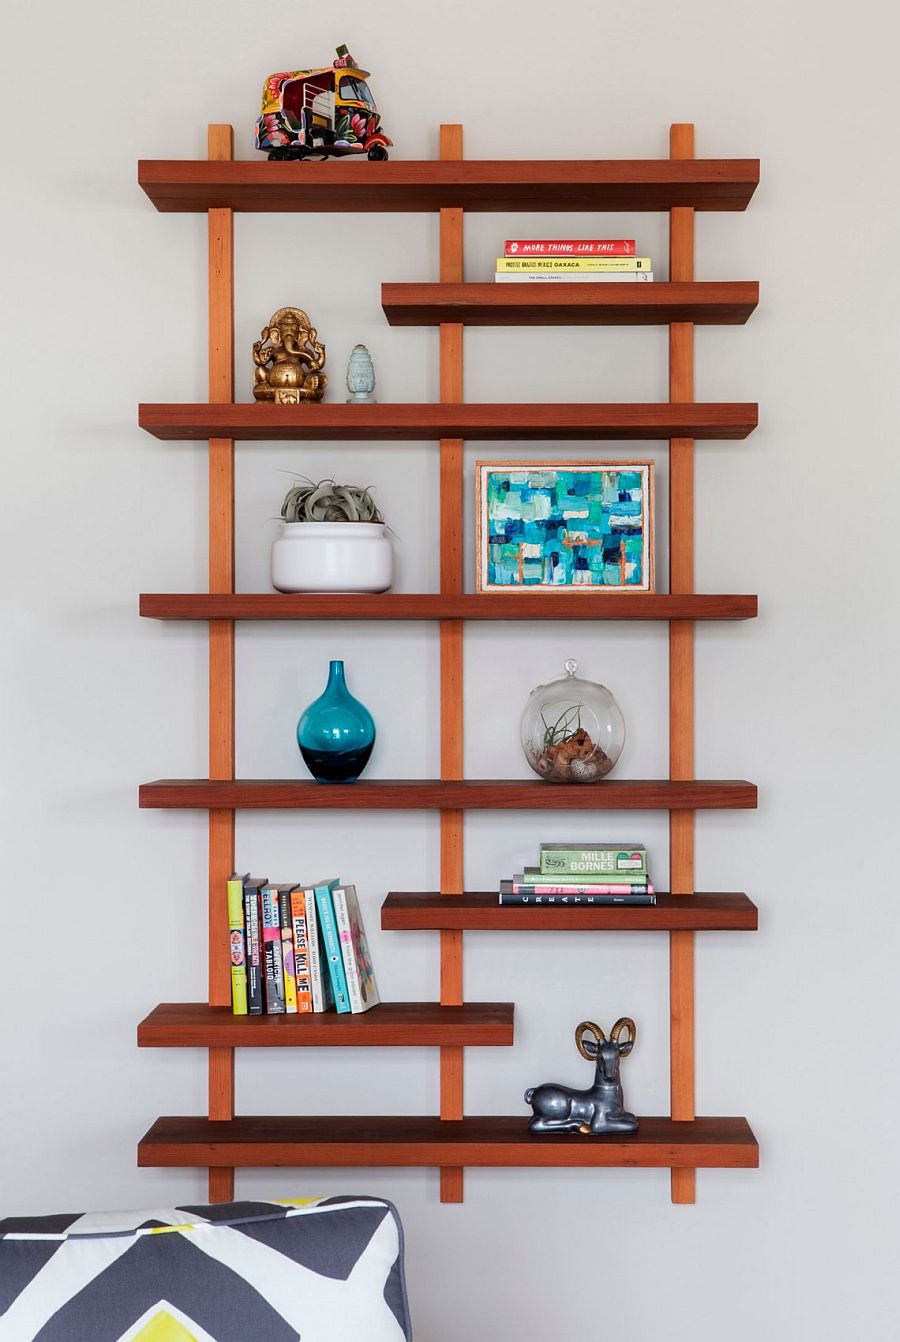 Floating wooden shelf keeps things simple and minimal